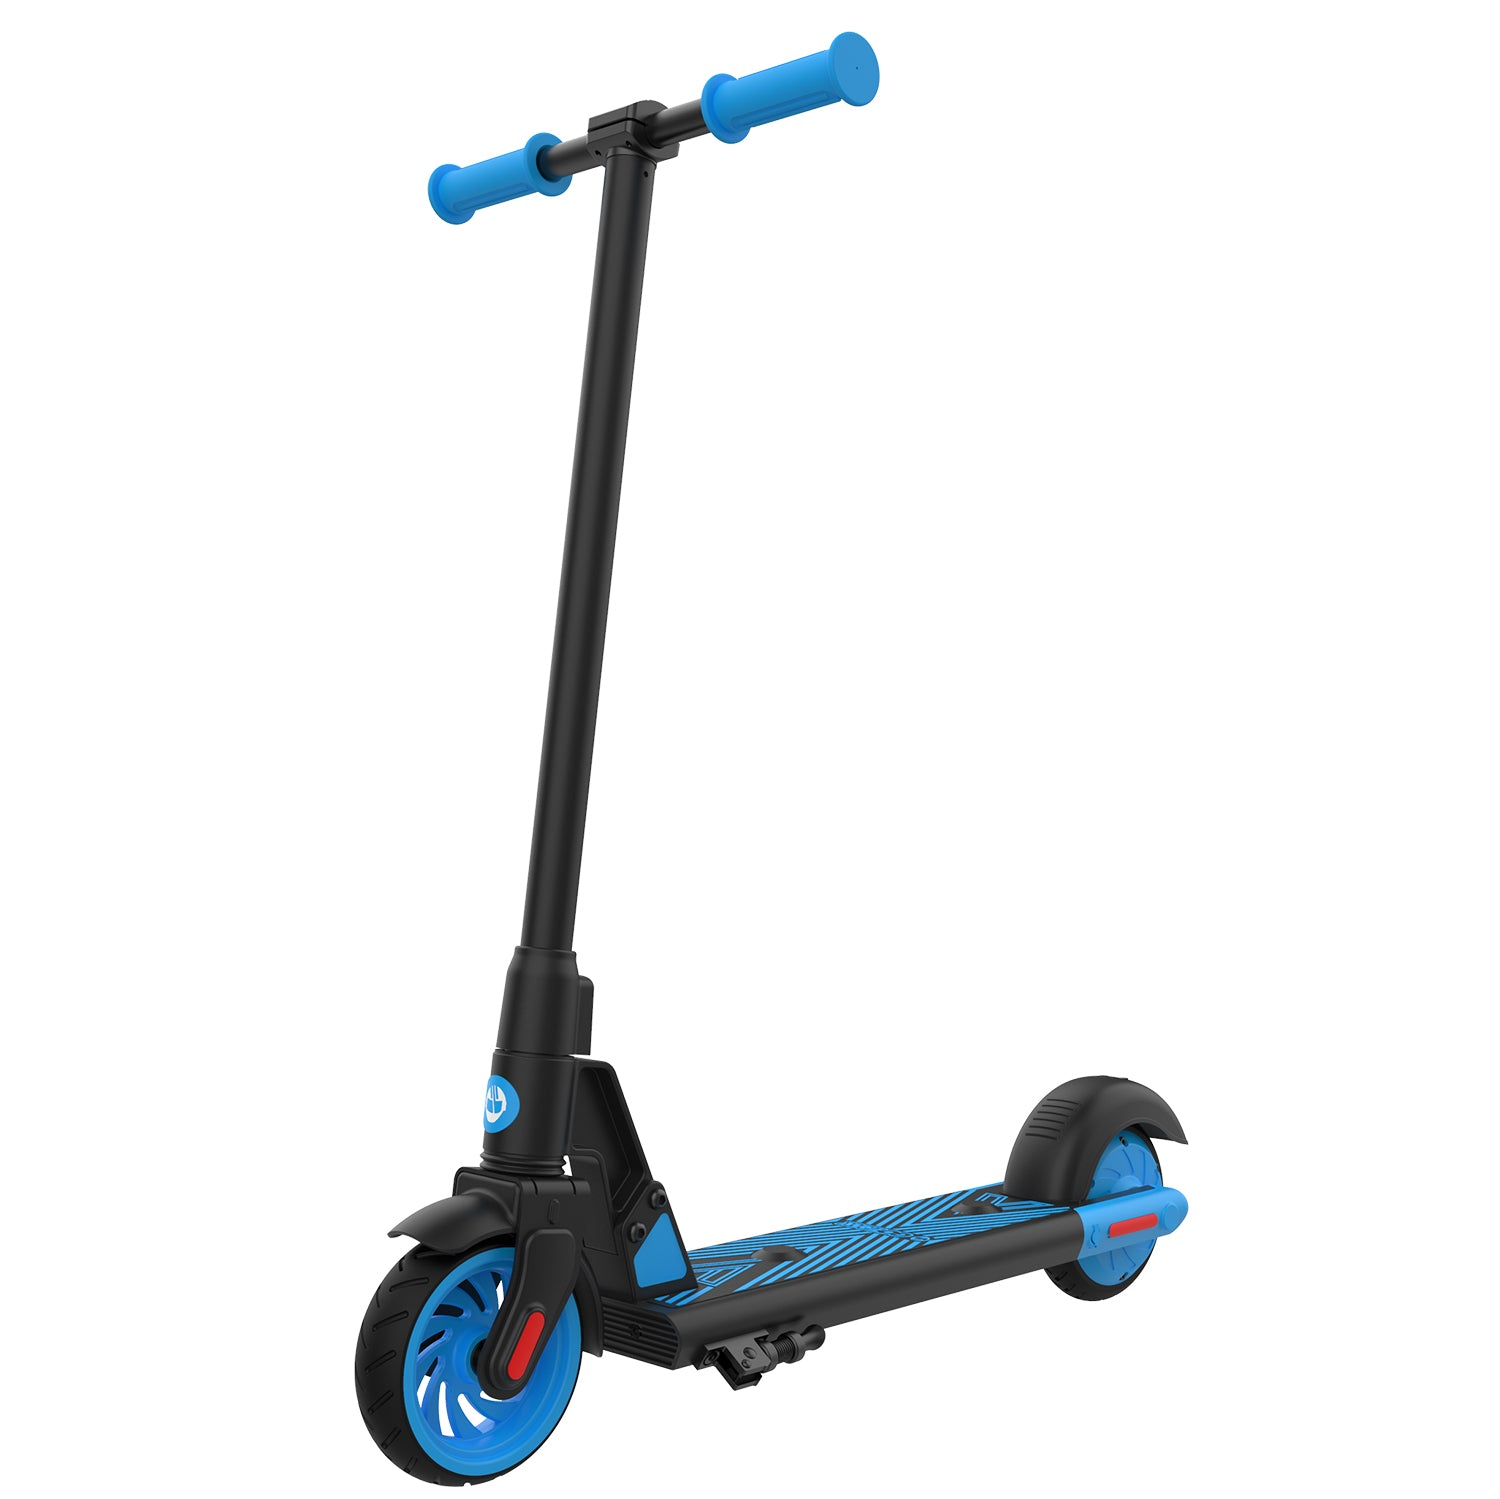 blue gks electric scooter for kids main image